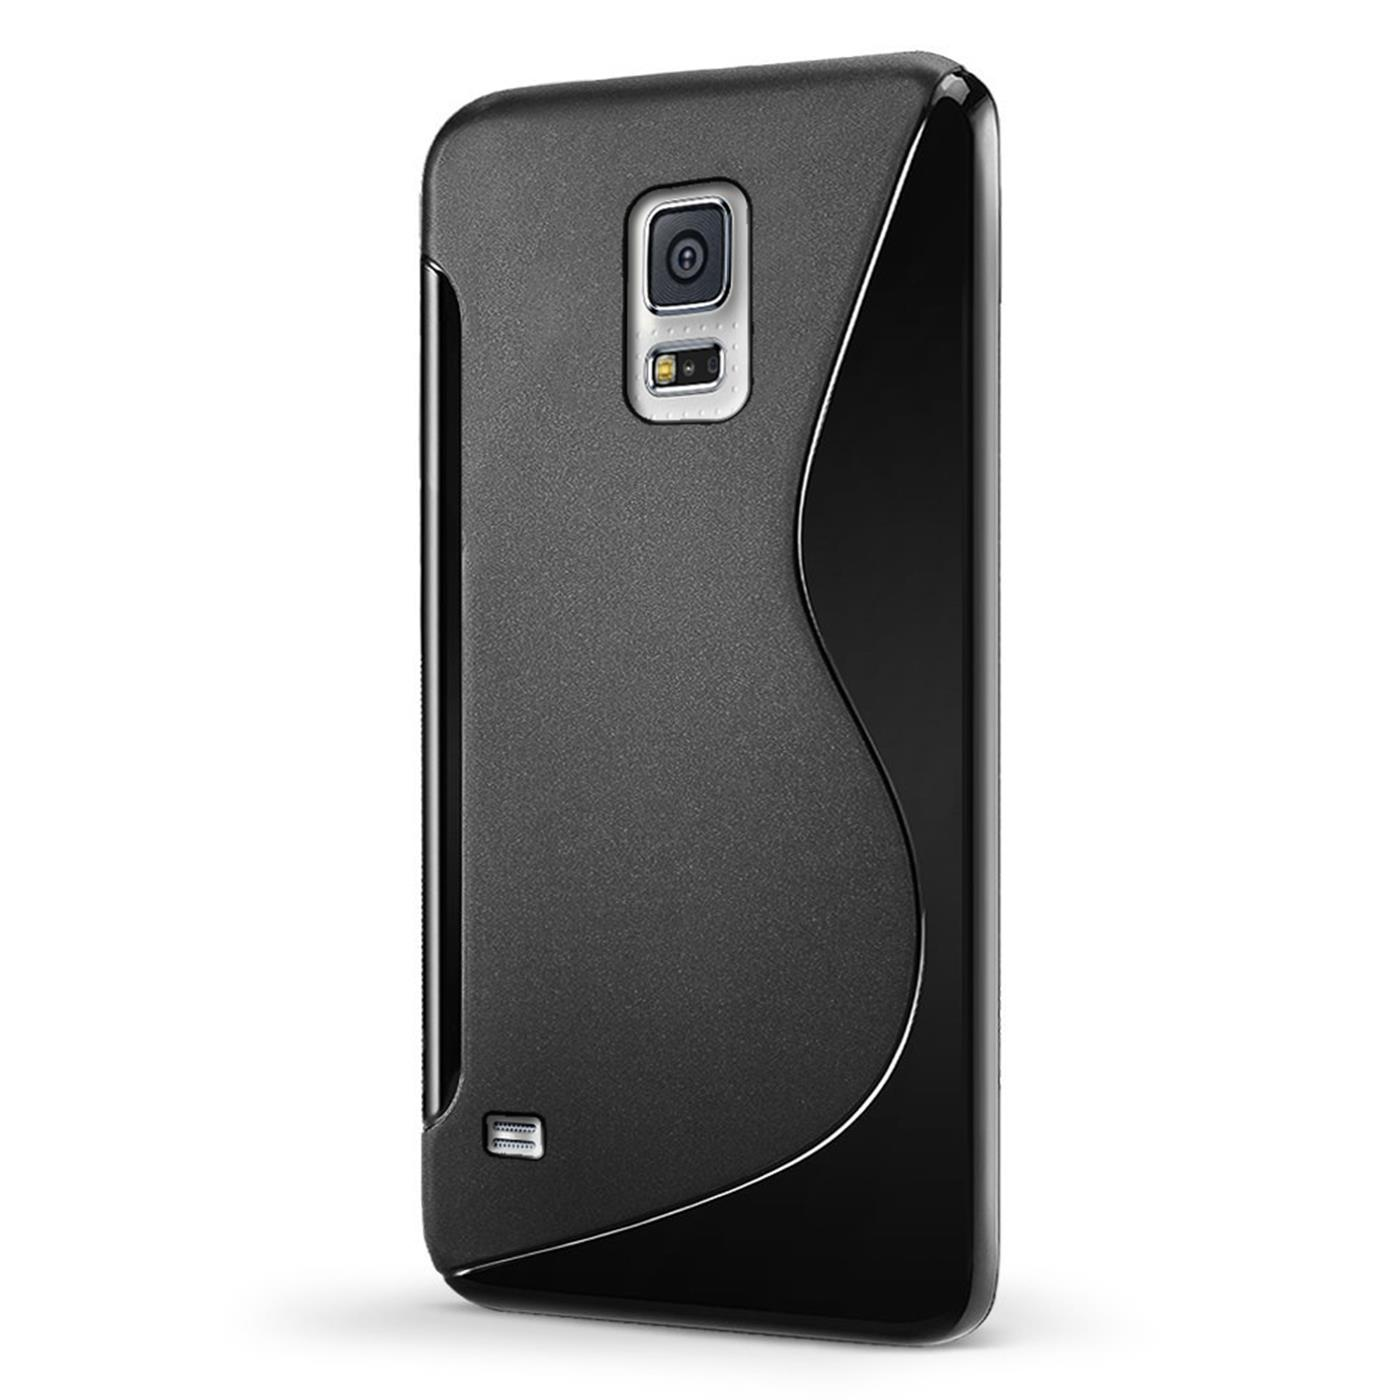 Samsung-Galaxy-s5-Neo-Silikon-Gel-S-Line-Case-Cover-Ultra-Thin-Slim-Back-Bumper Indexbild 20